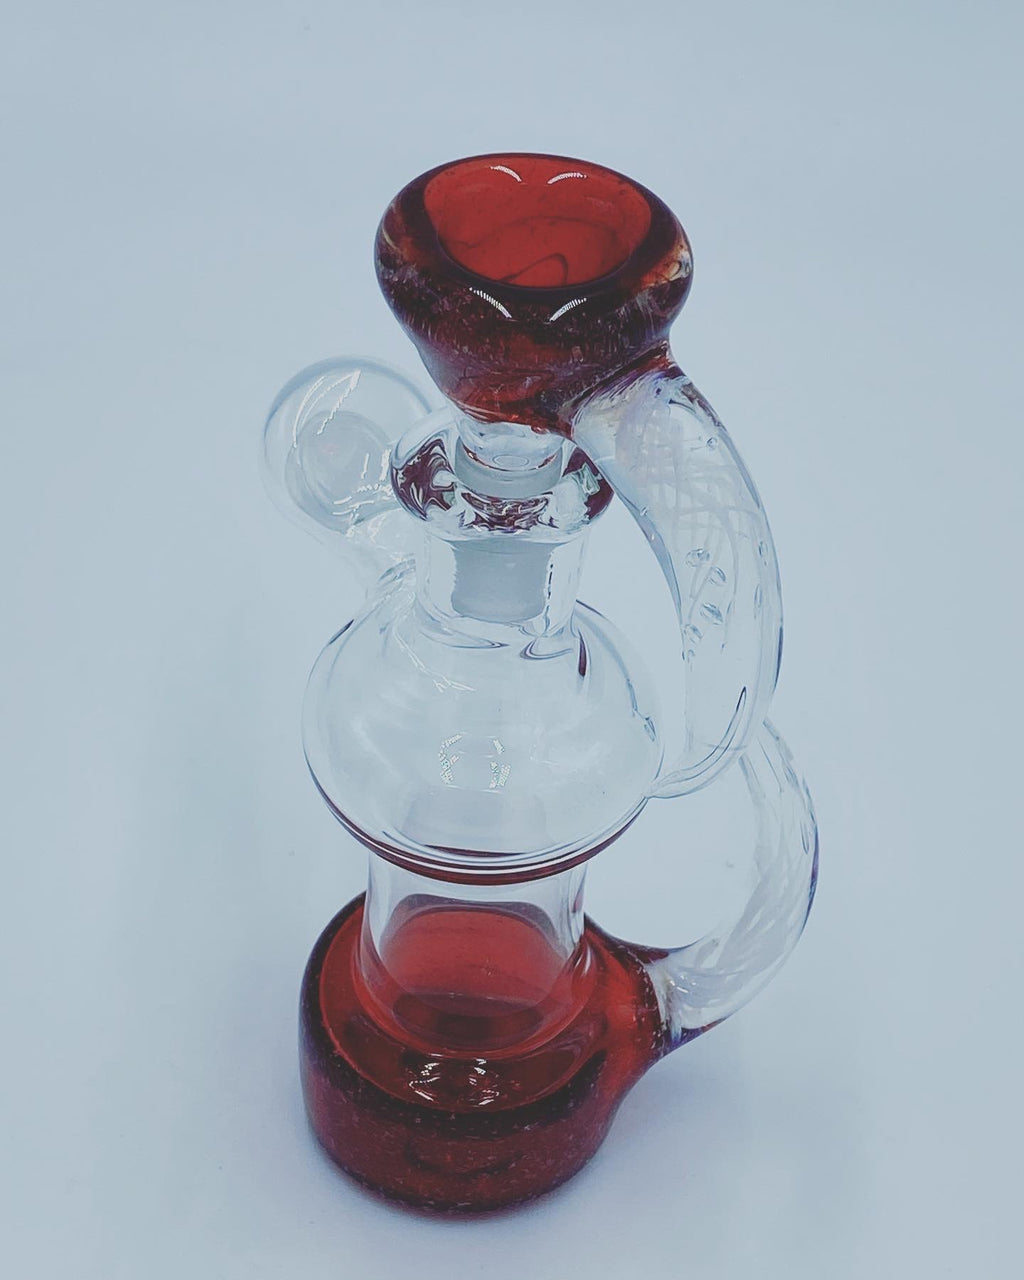 Kobb Glass 14mm Dry Ash Catcher